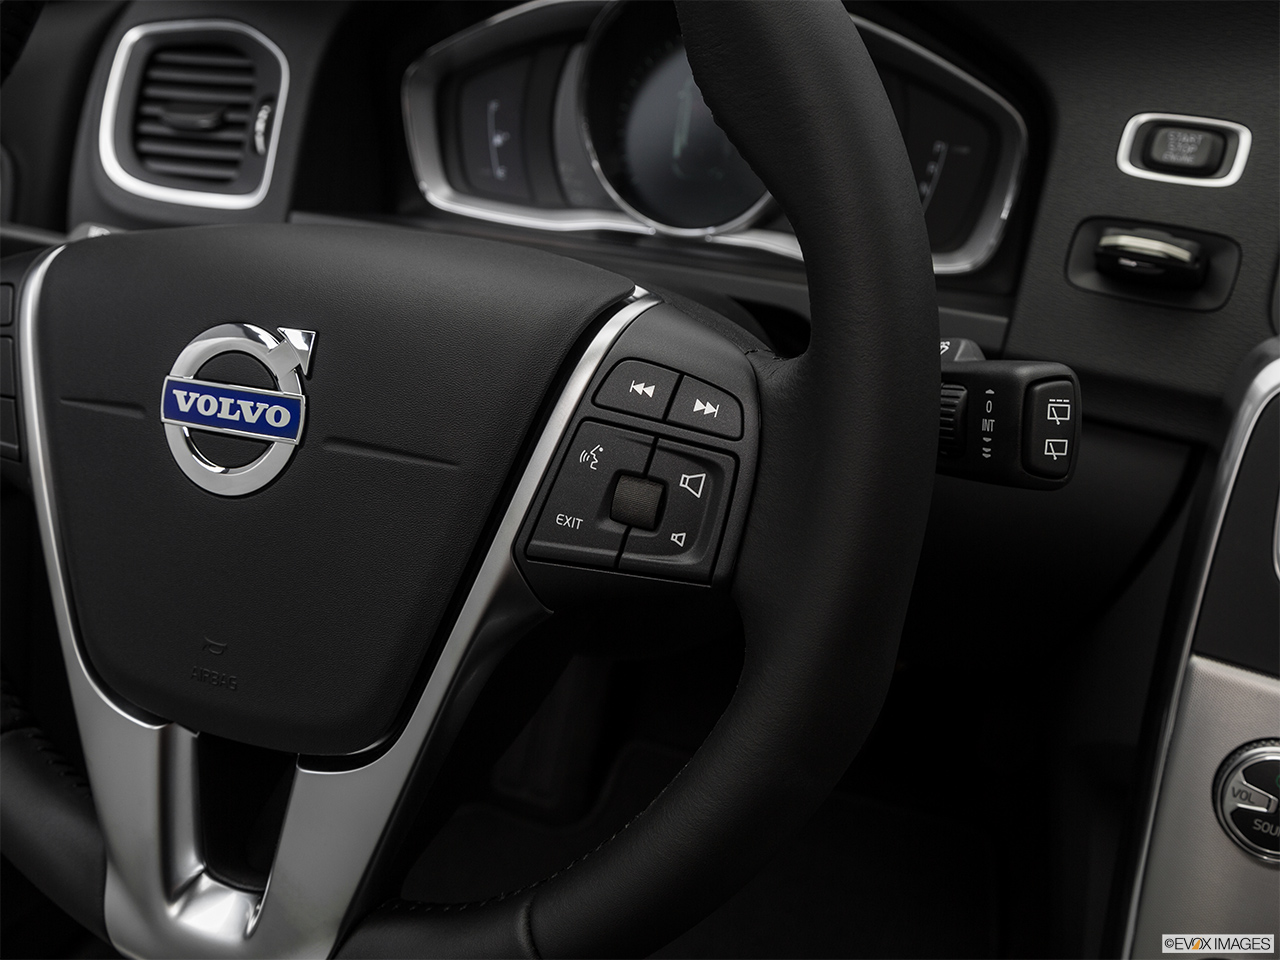 2018 Volvo V60 Cross Country T5 AWD Steering Wheel Controls (Right Side)